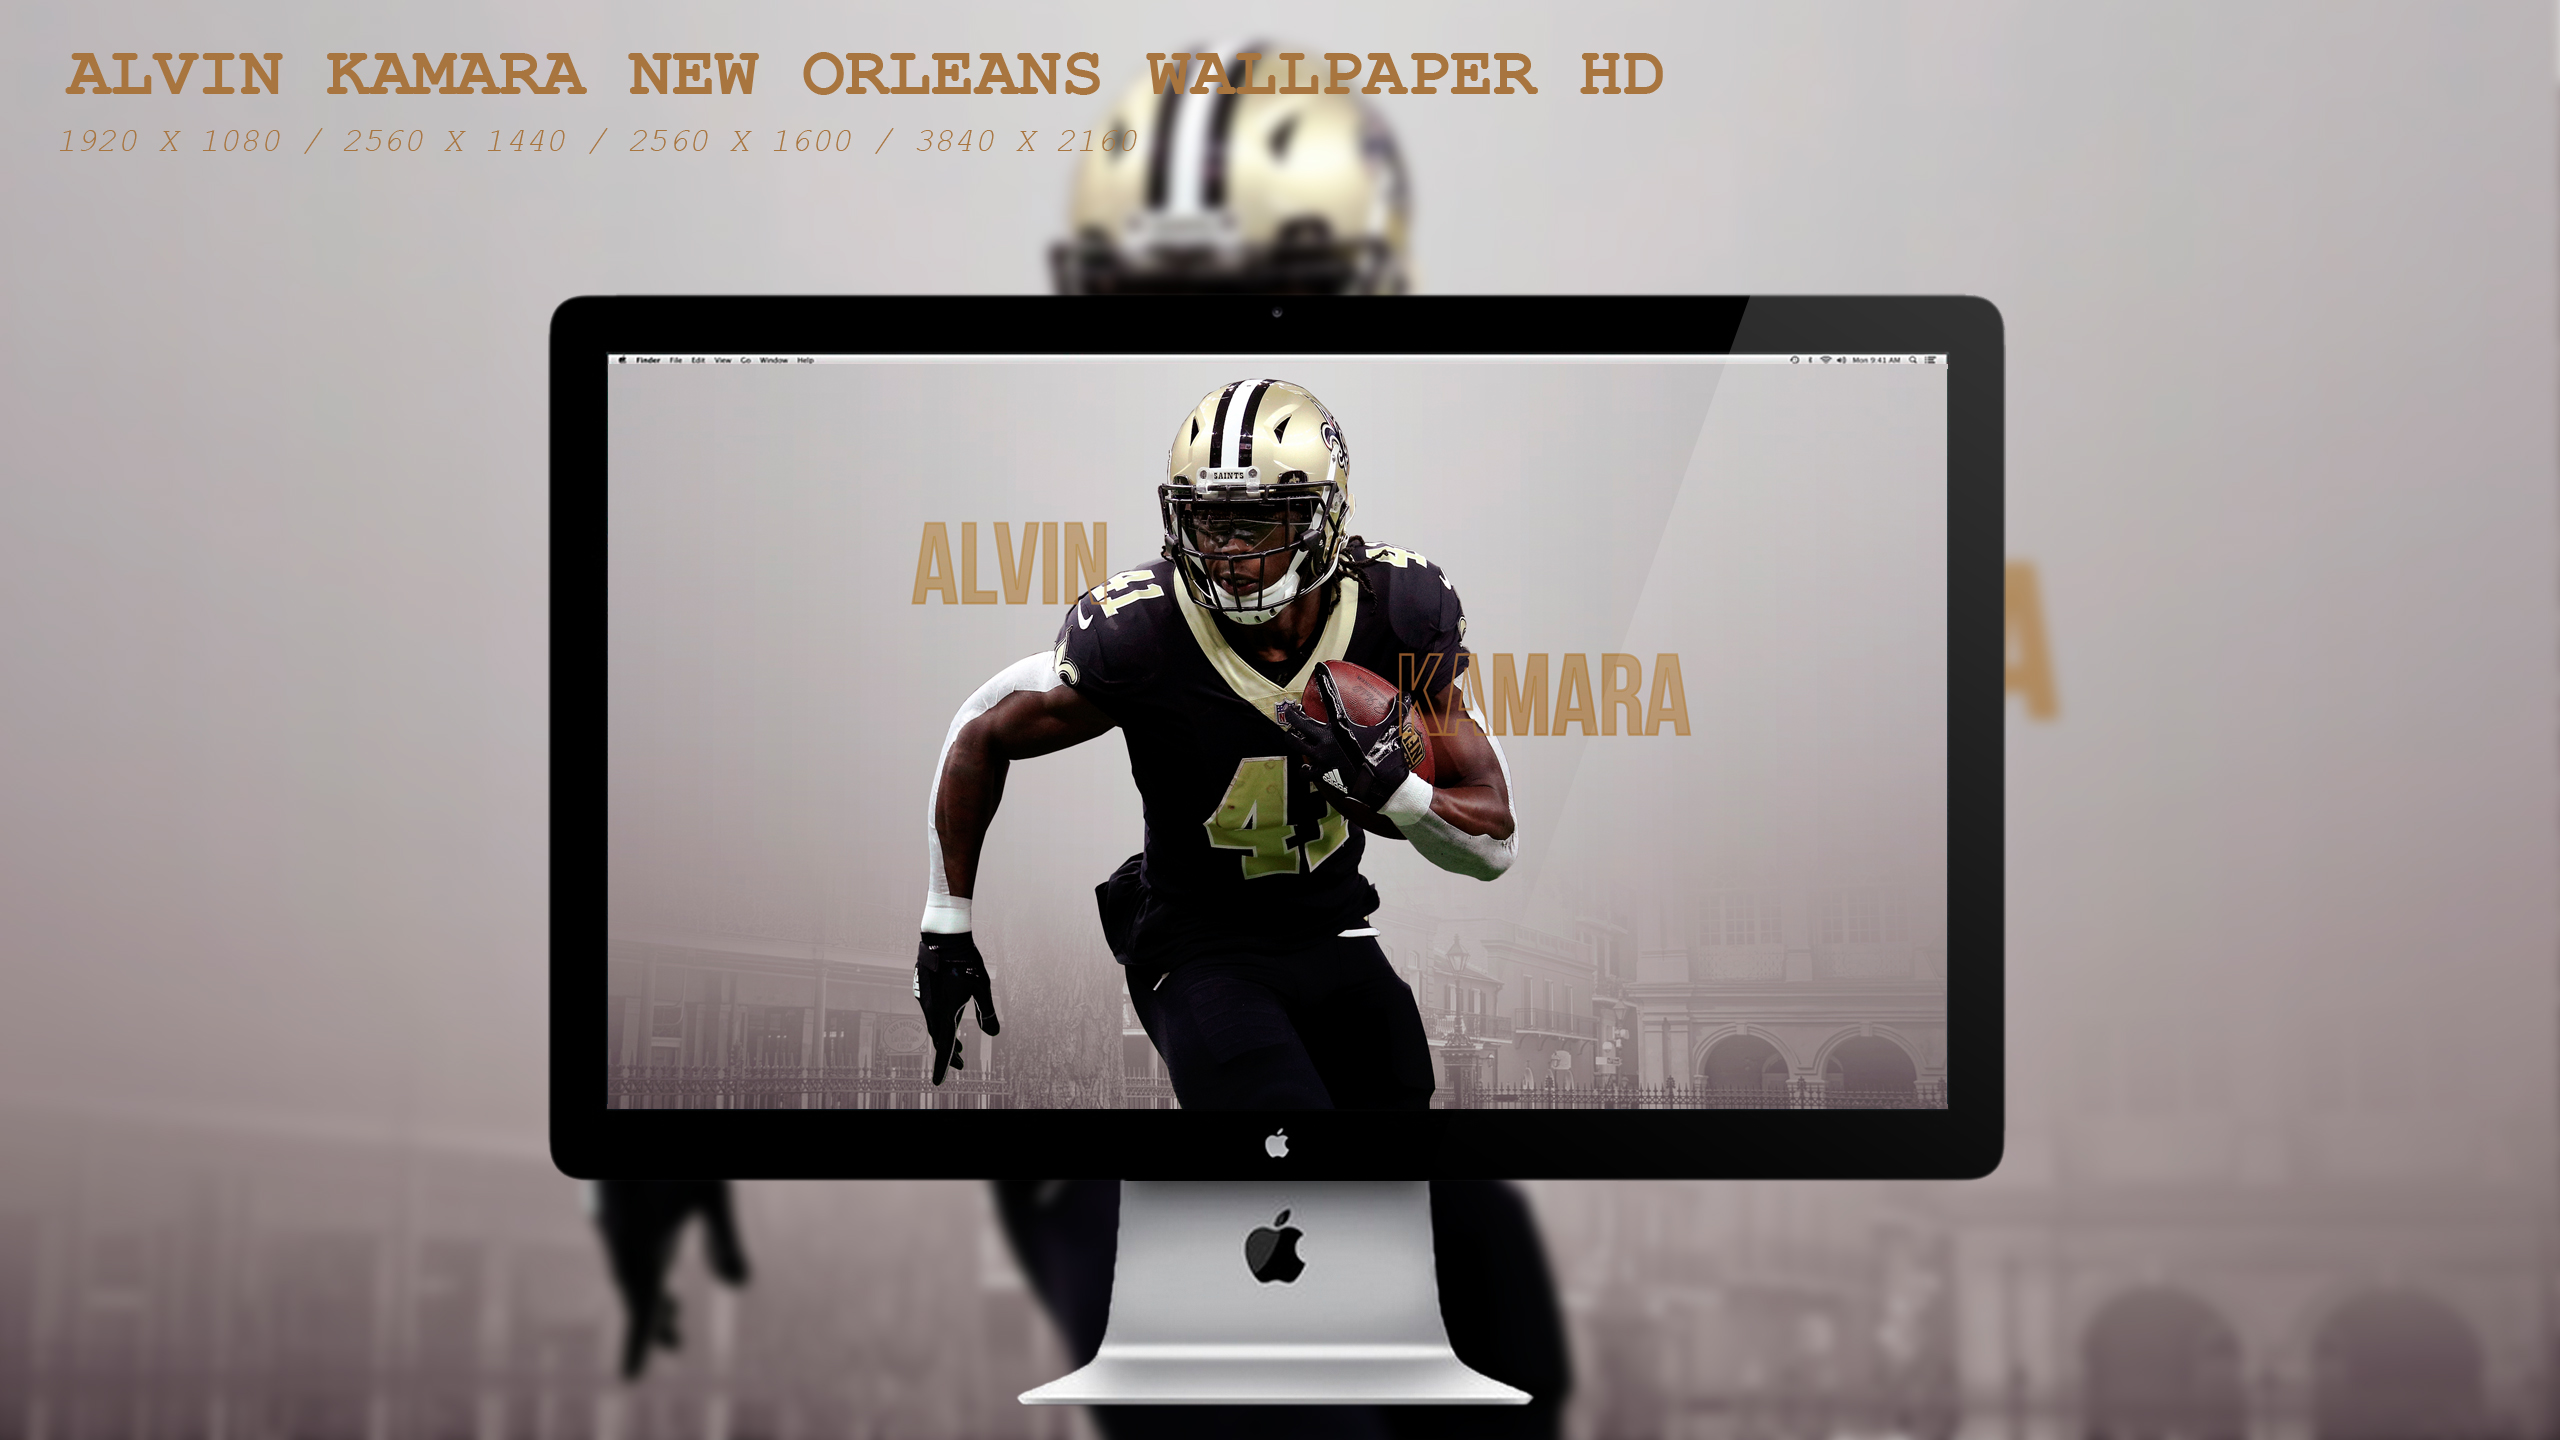 Alvin Kamara New Orleans Wallpaper Hd By Beaware8 On Deviantart